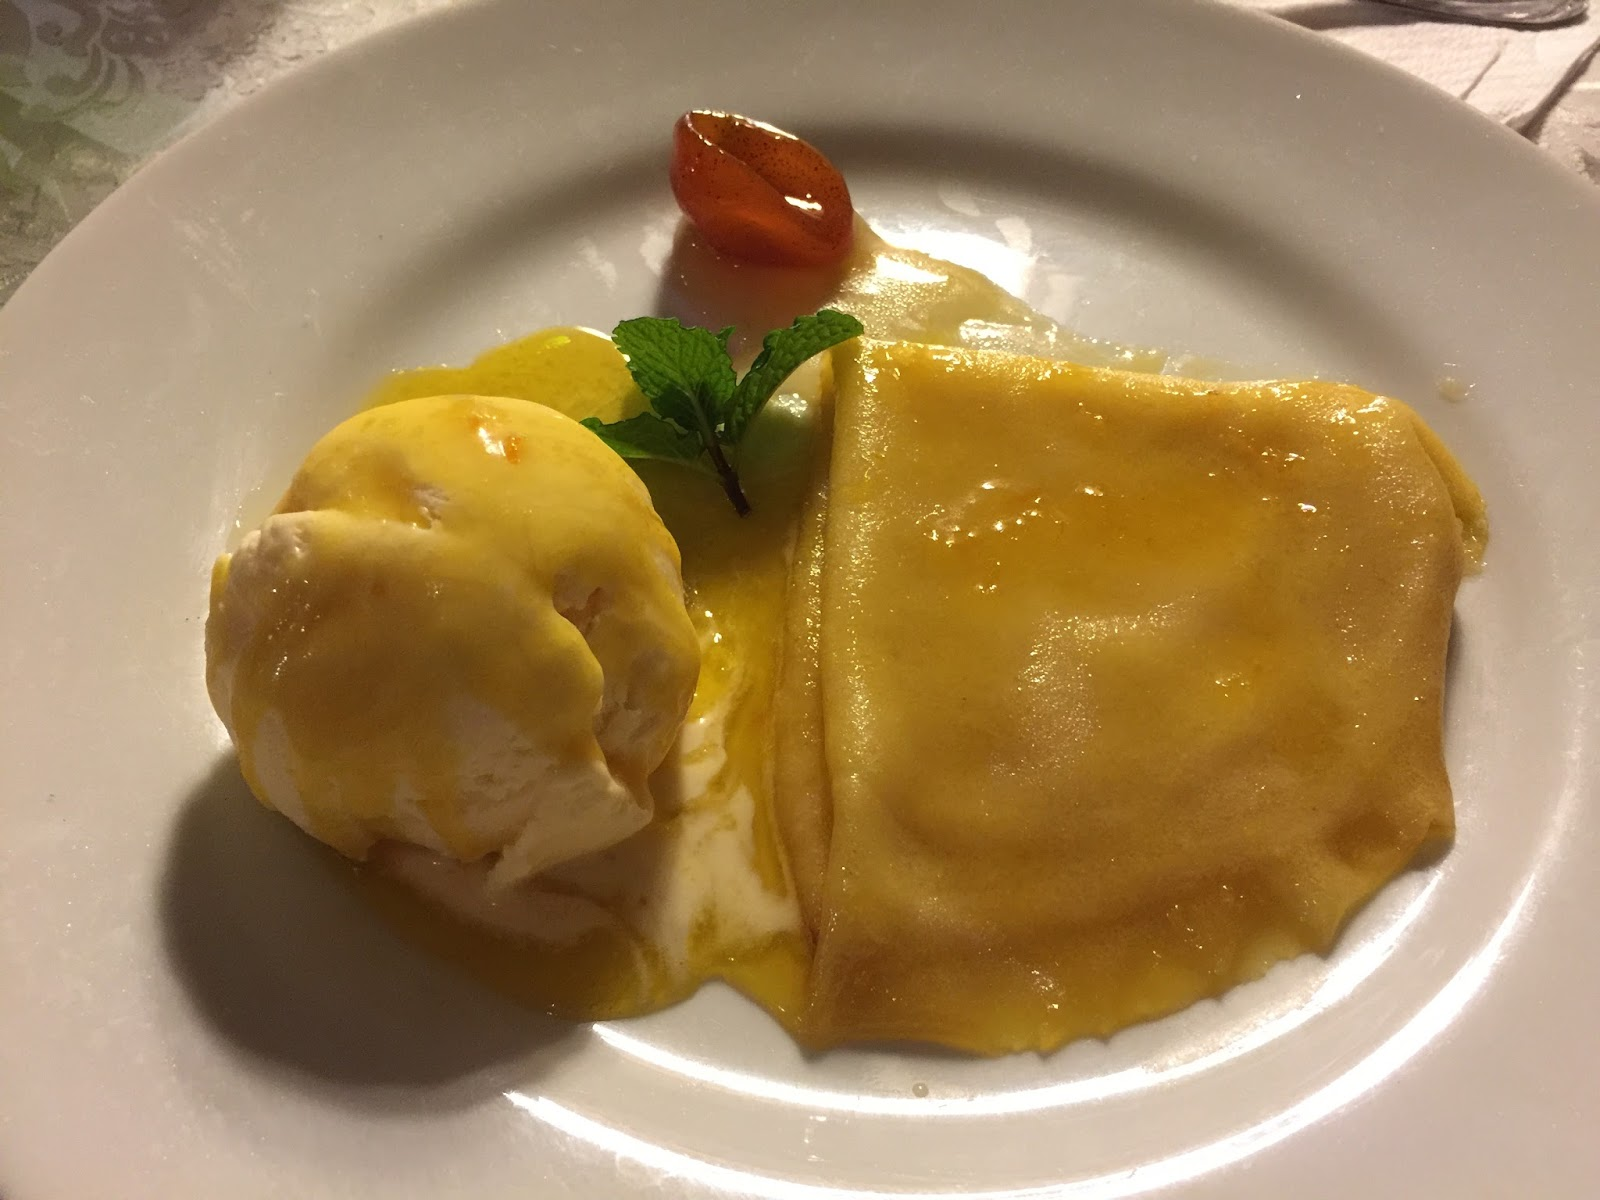 Crepe suzette restaurante Don Claudino